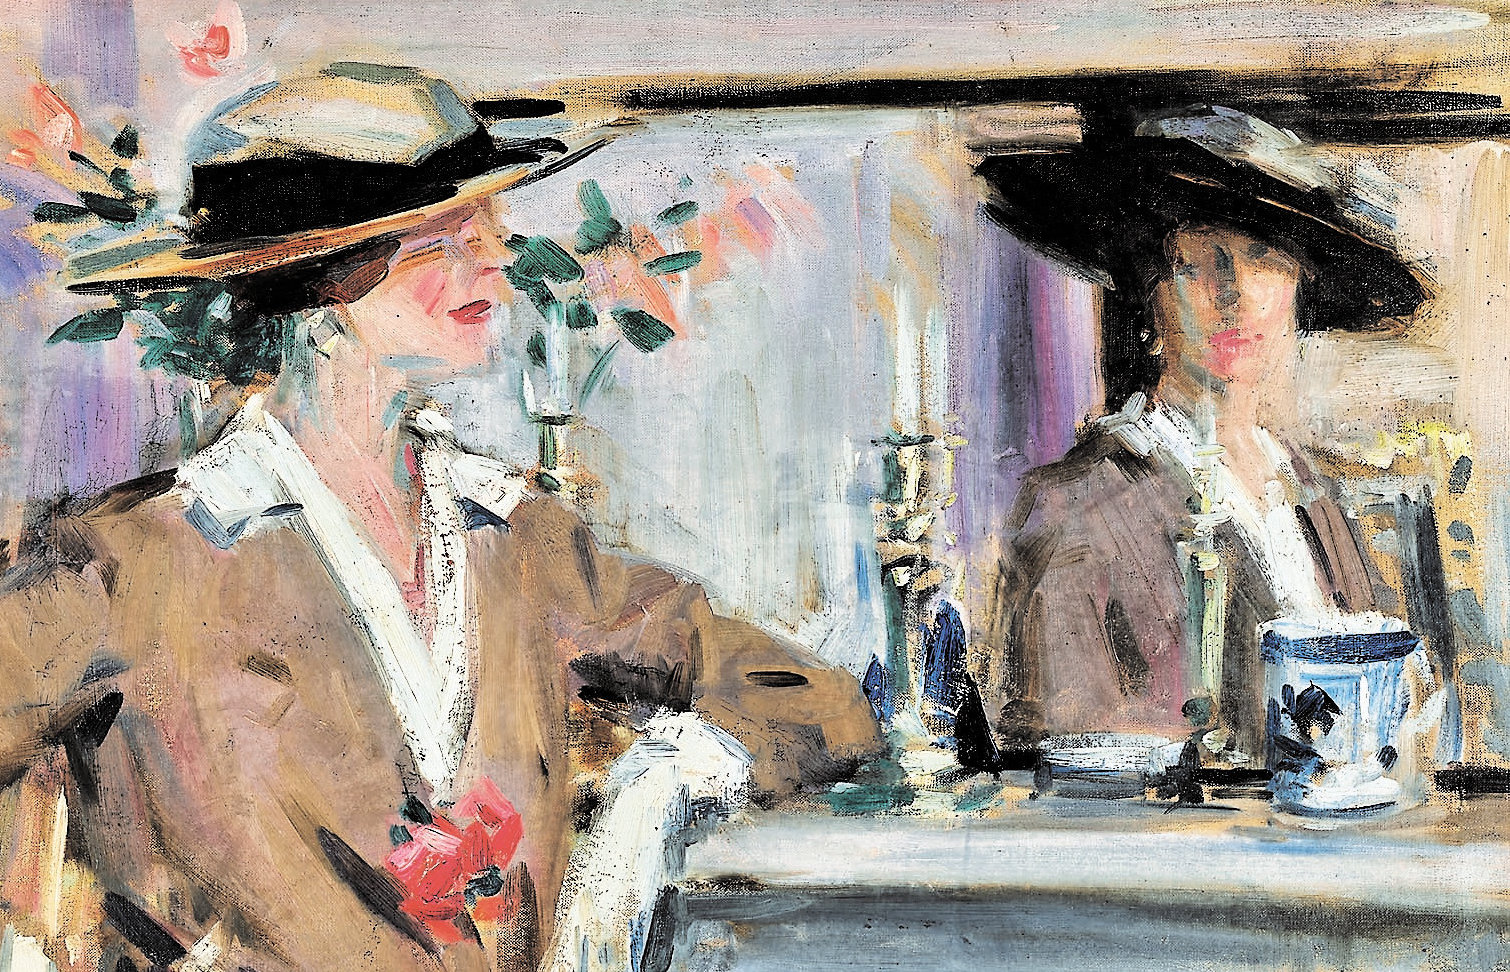 Cadell's Reflection of 1915 sold for £874,000